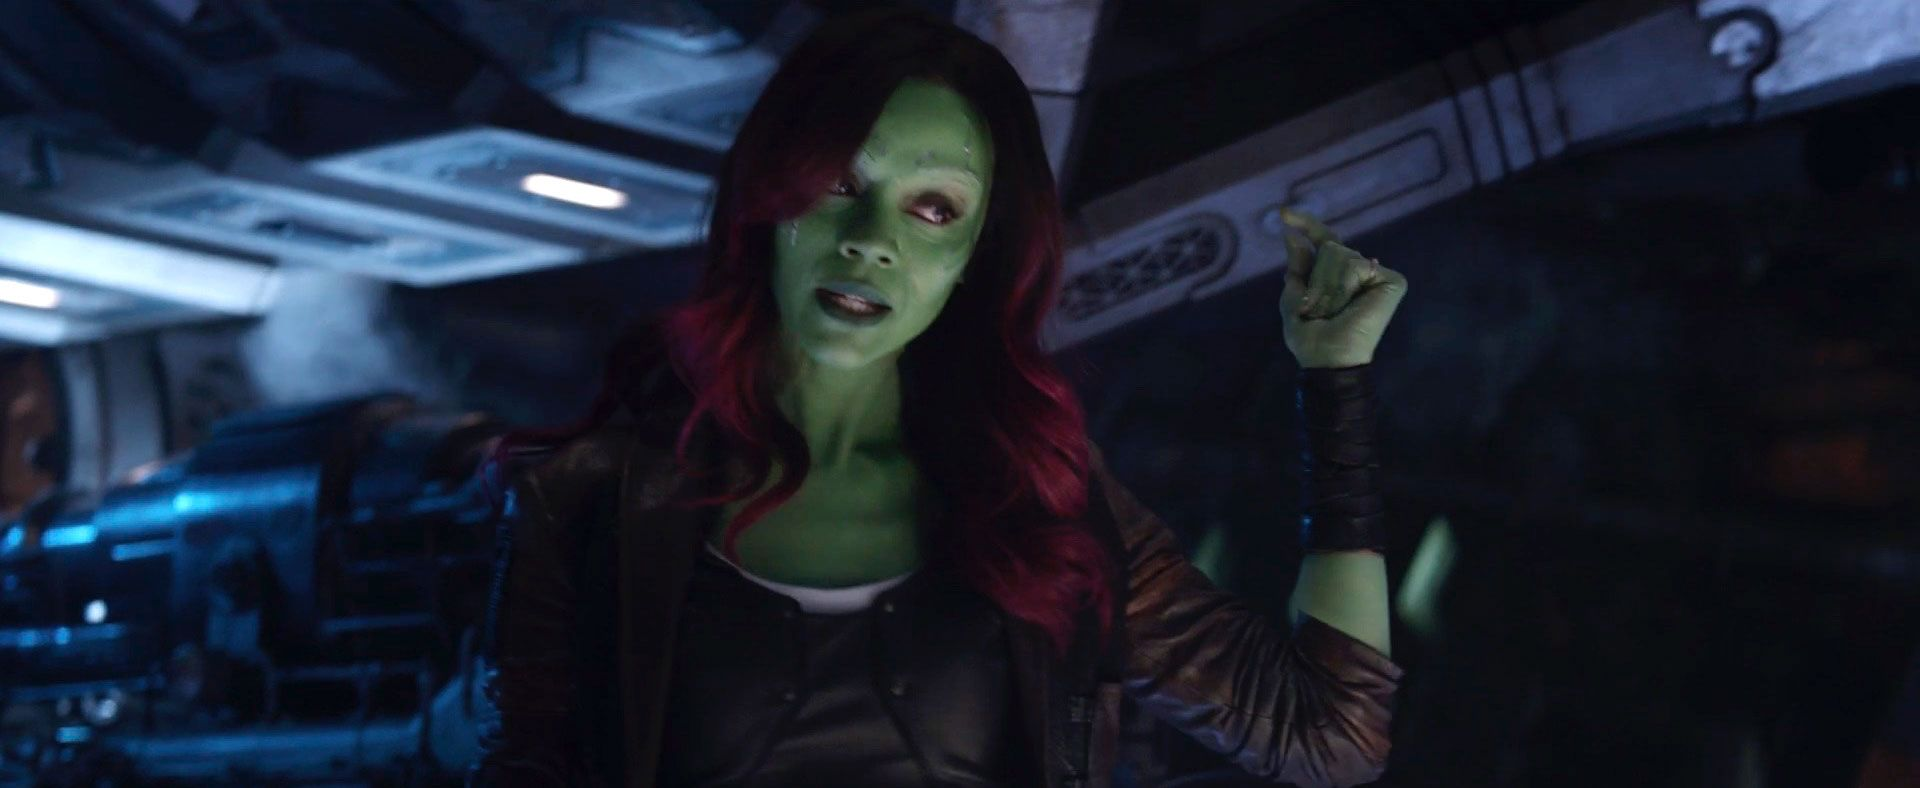 Avengers Infinity War deleted scene with Thanos and Gamora